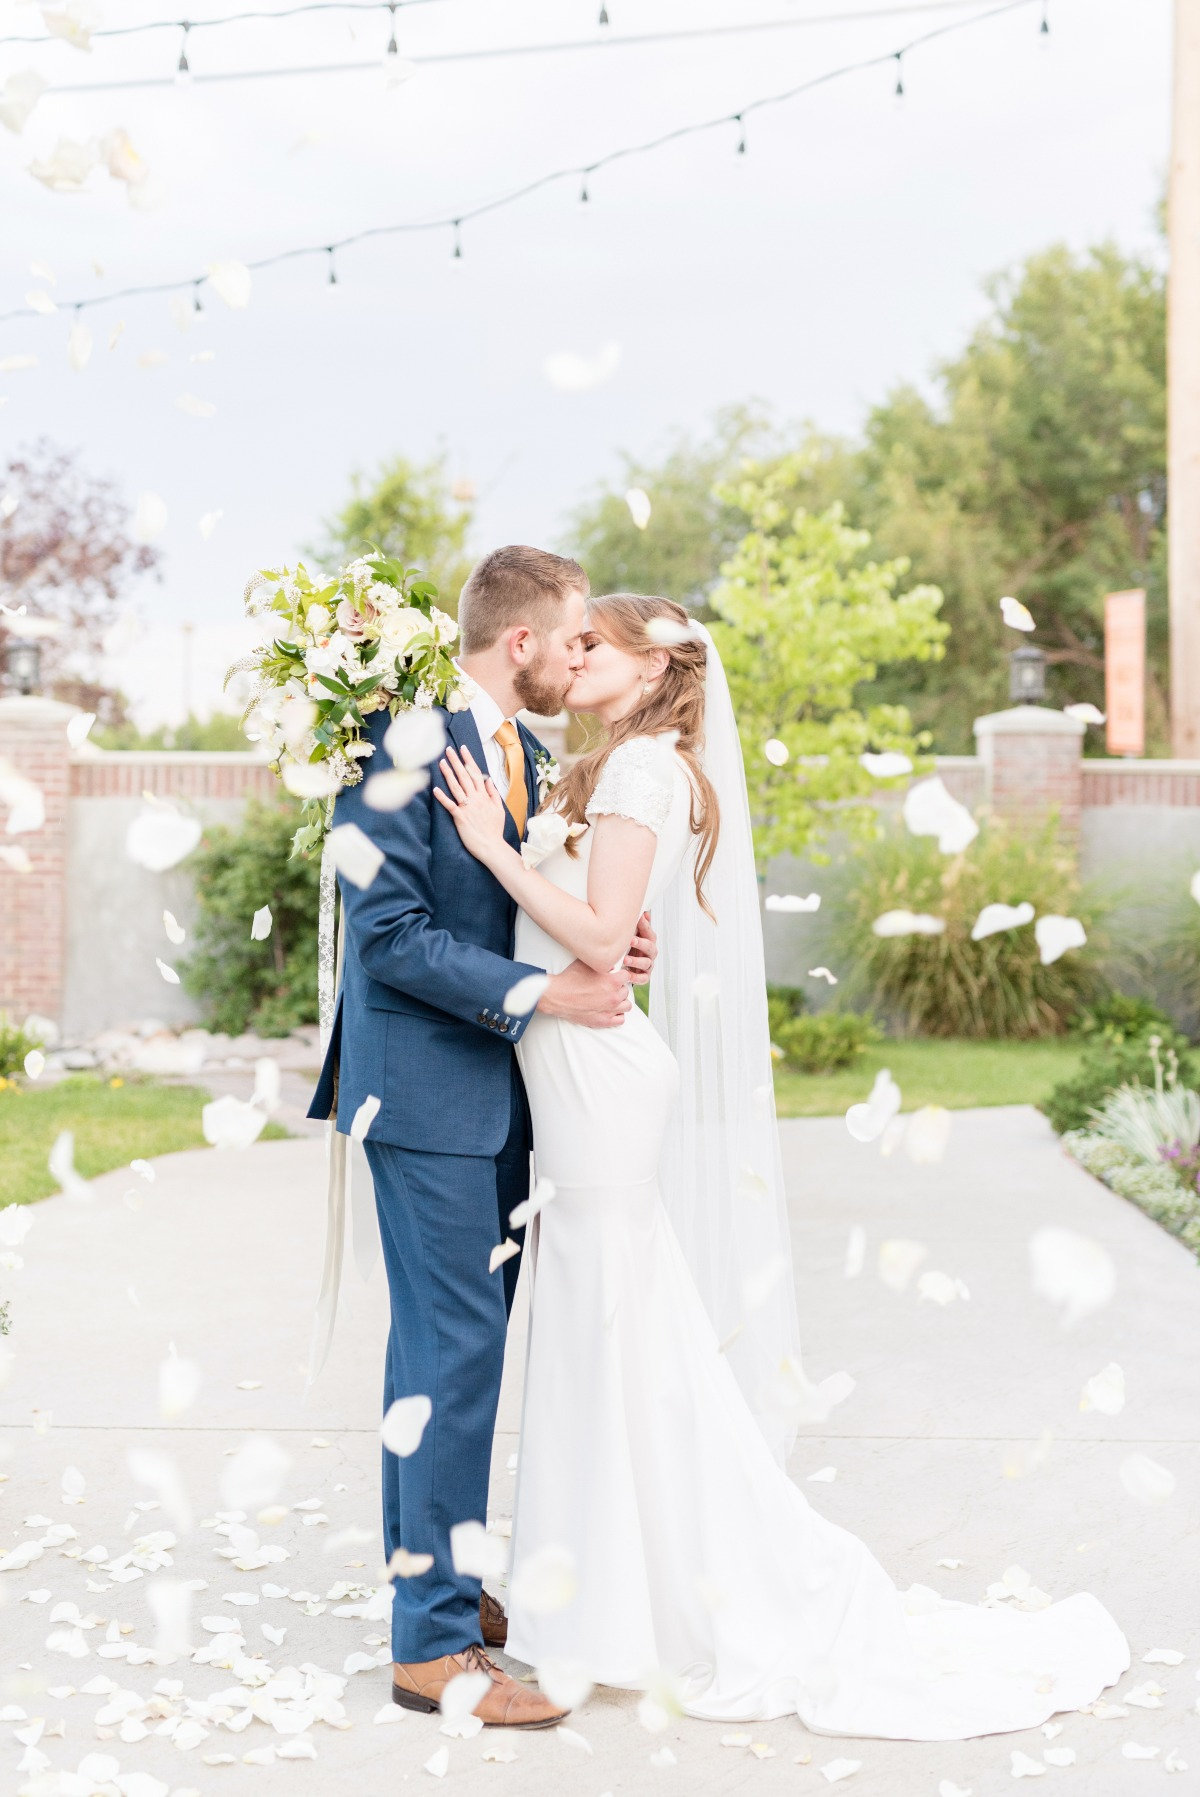 wedding kiss with flower petal toss